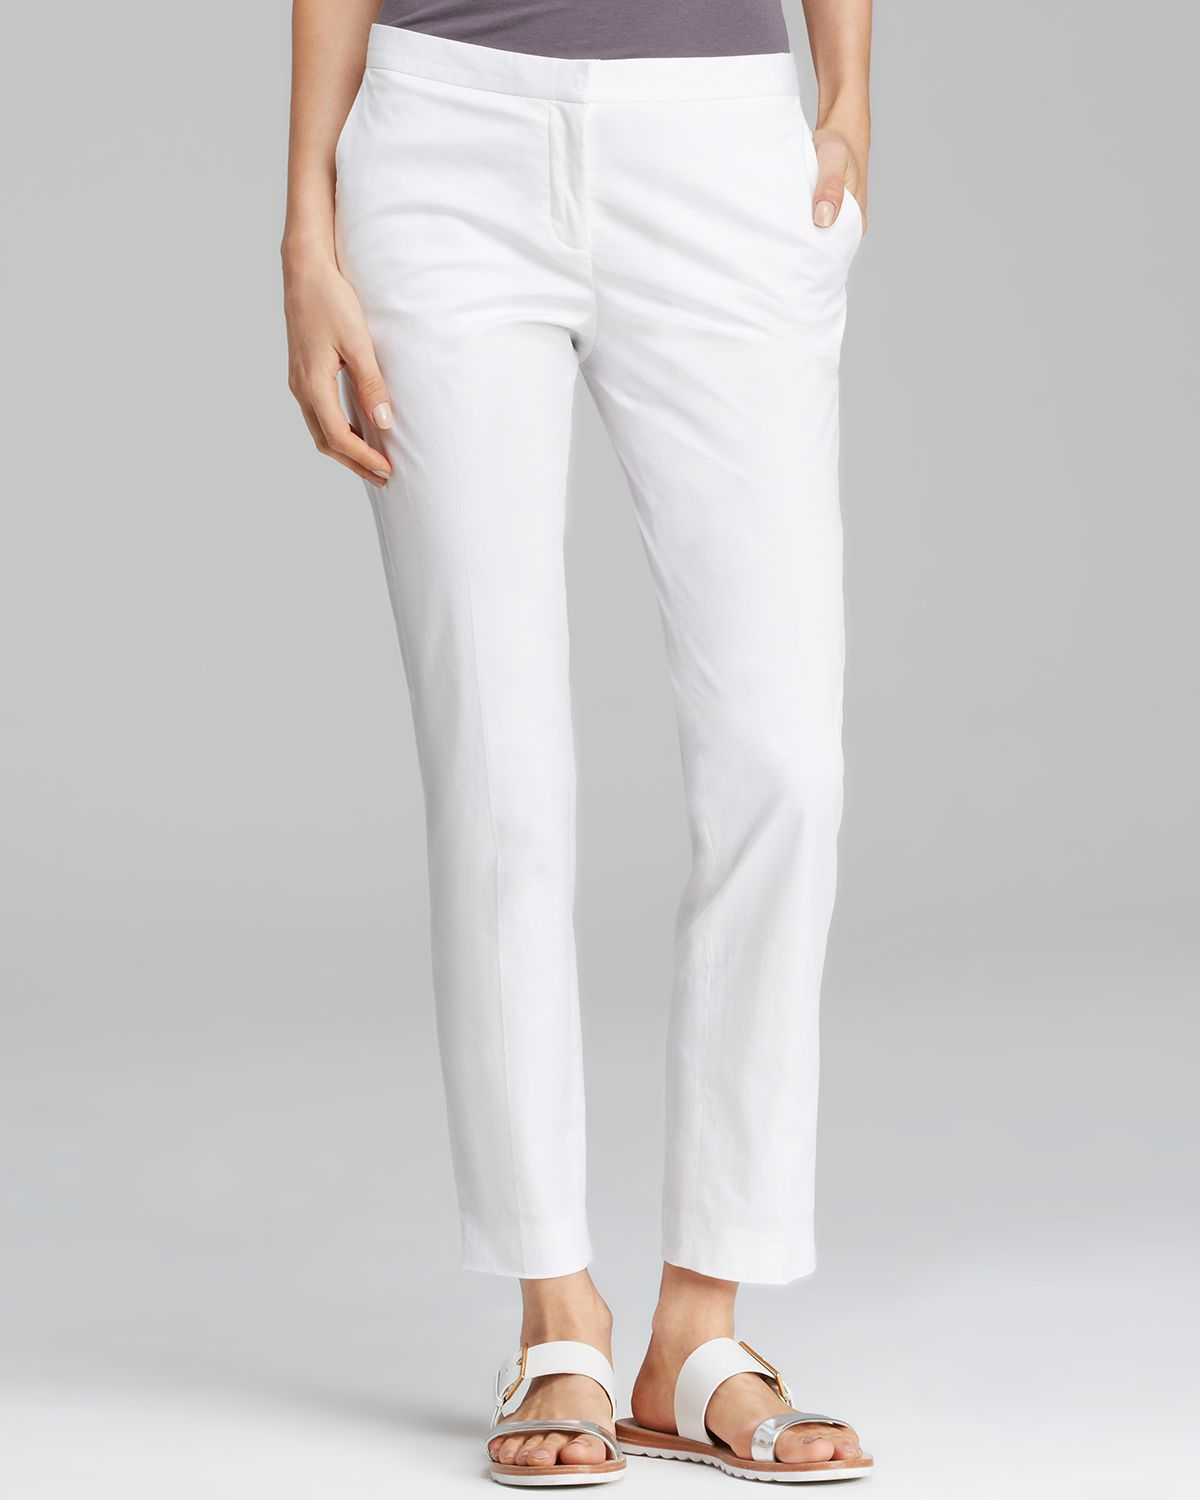 Model White Dress Pictures Womens White Dress Pants